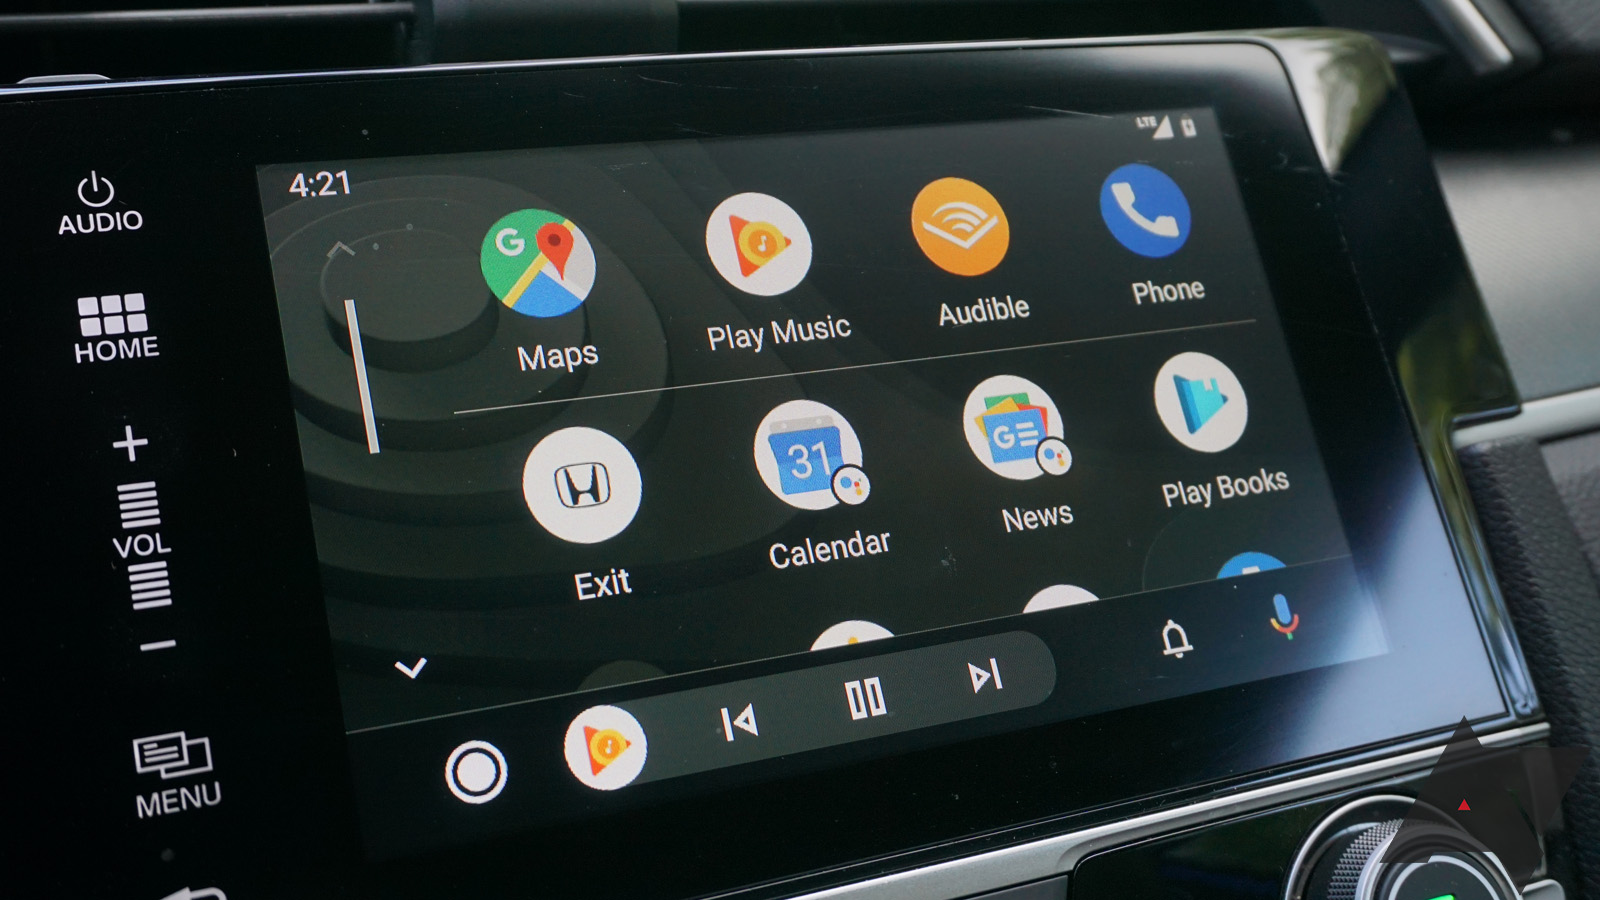 Android Auto Wireless now works on select Samsung Galaxy phones (Update: S20, Z Flip)